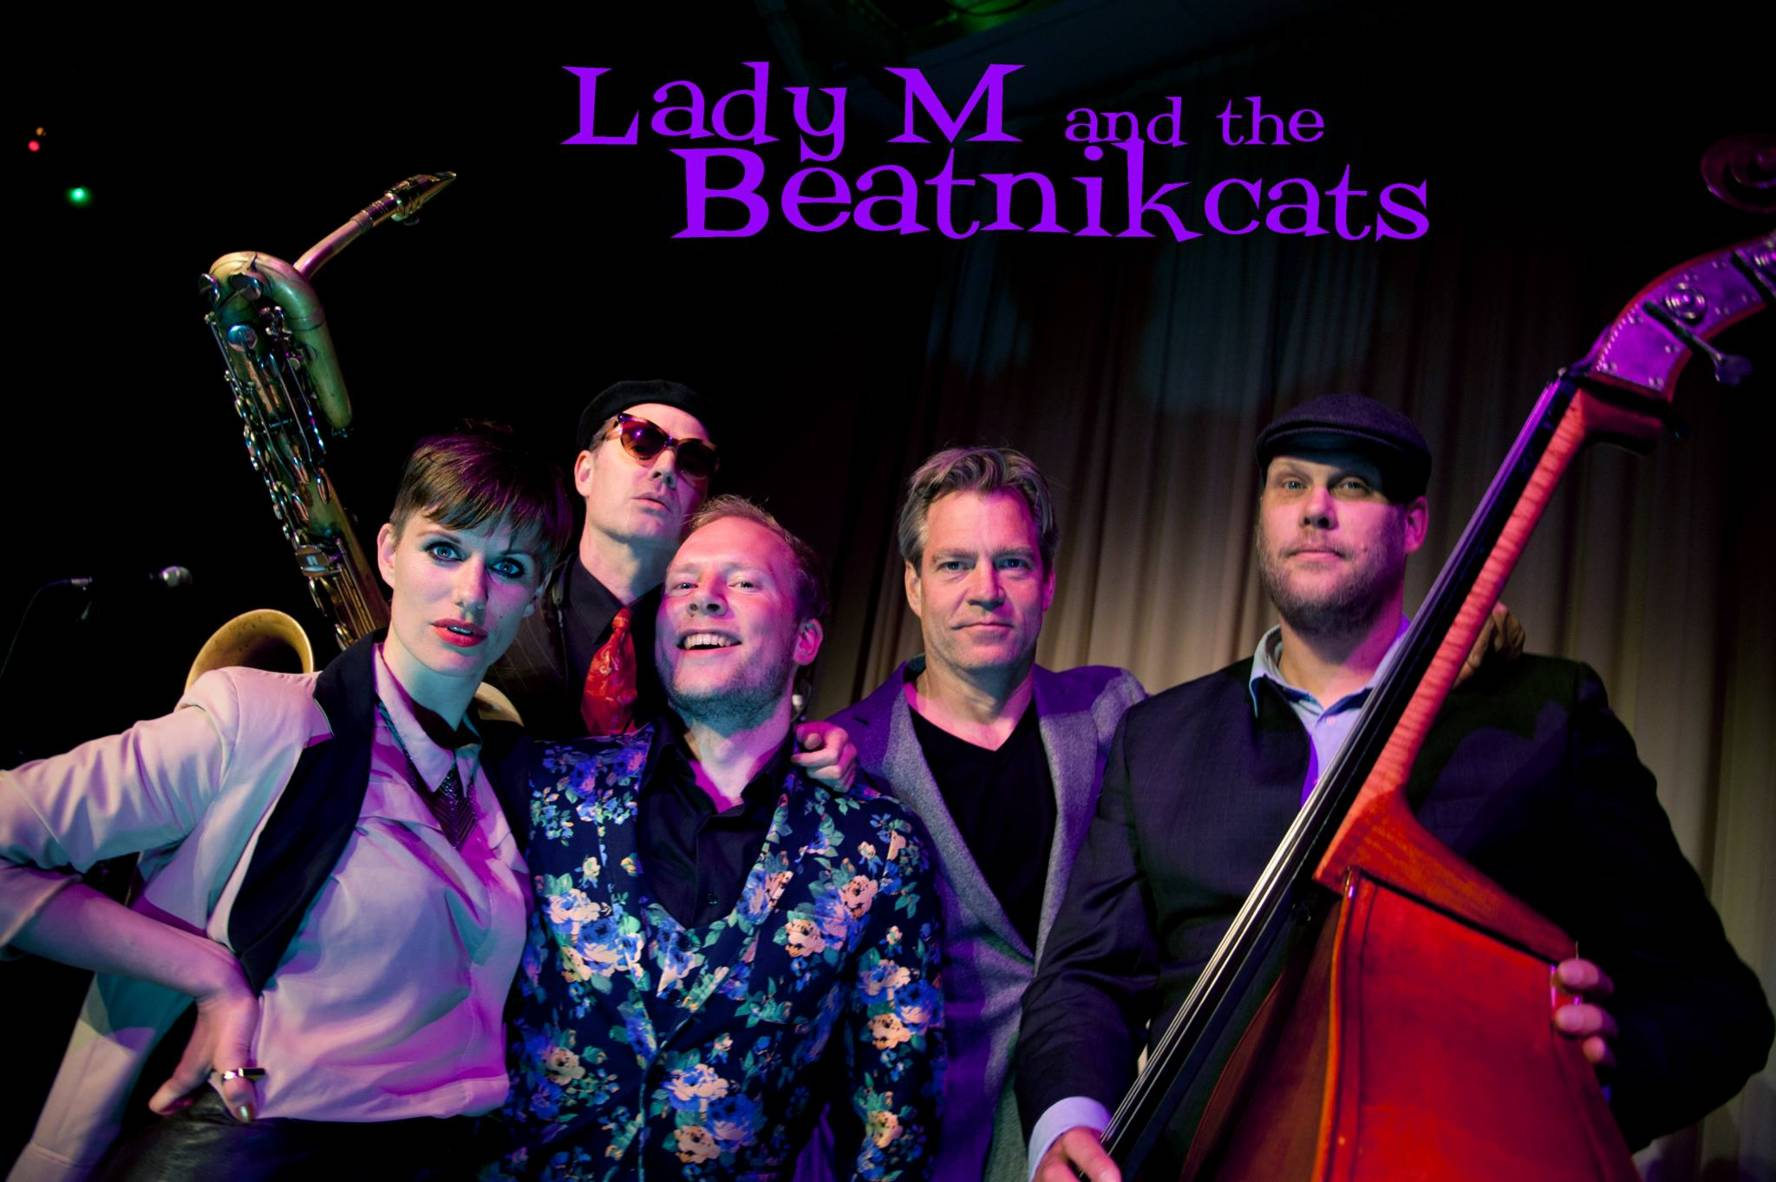 Lady Marmalade & The Beatnik Cats